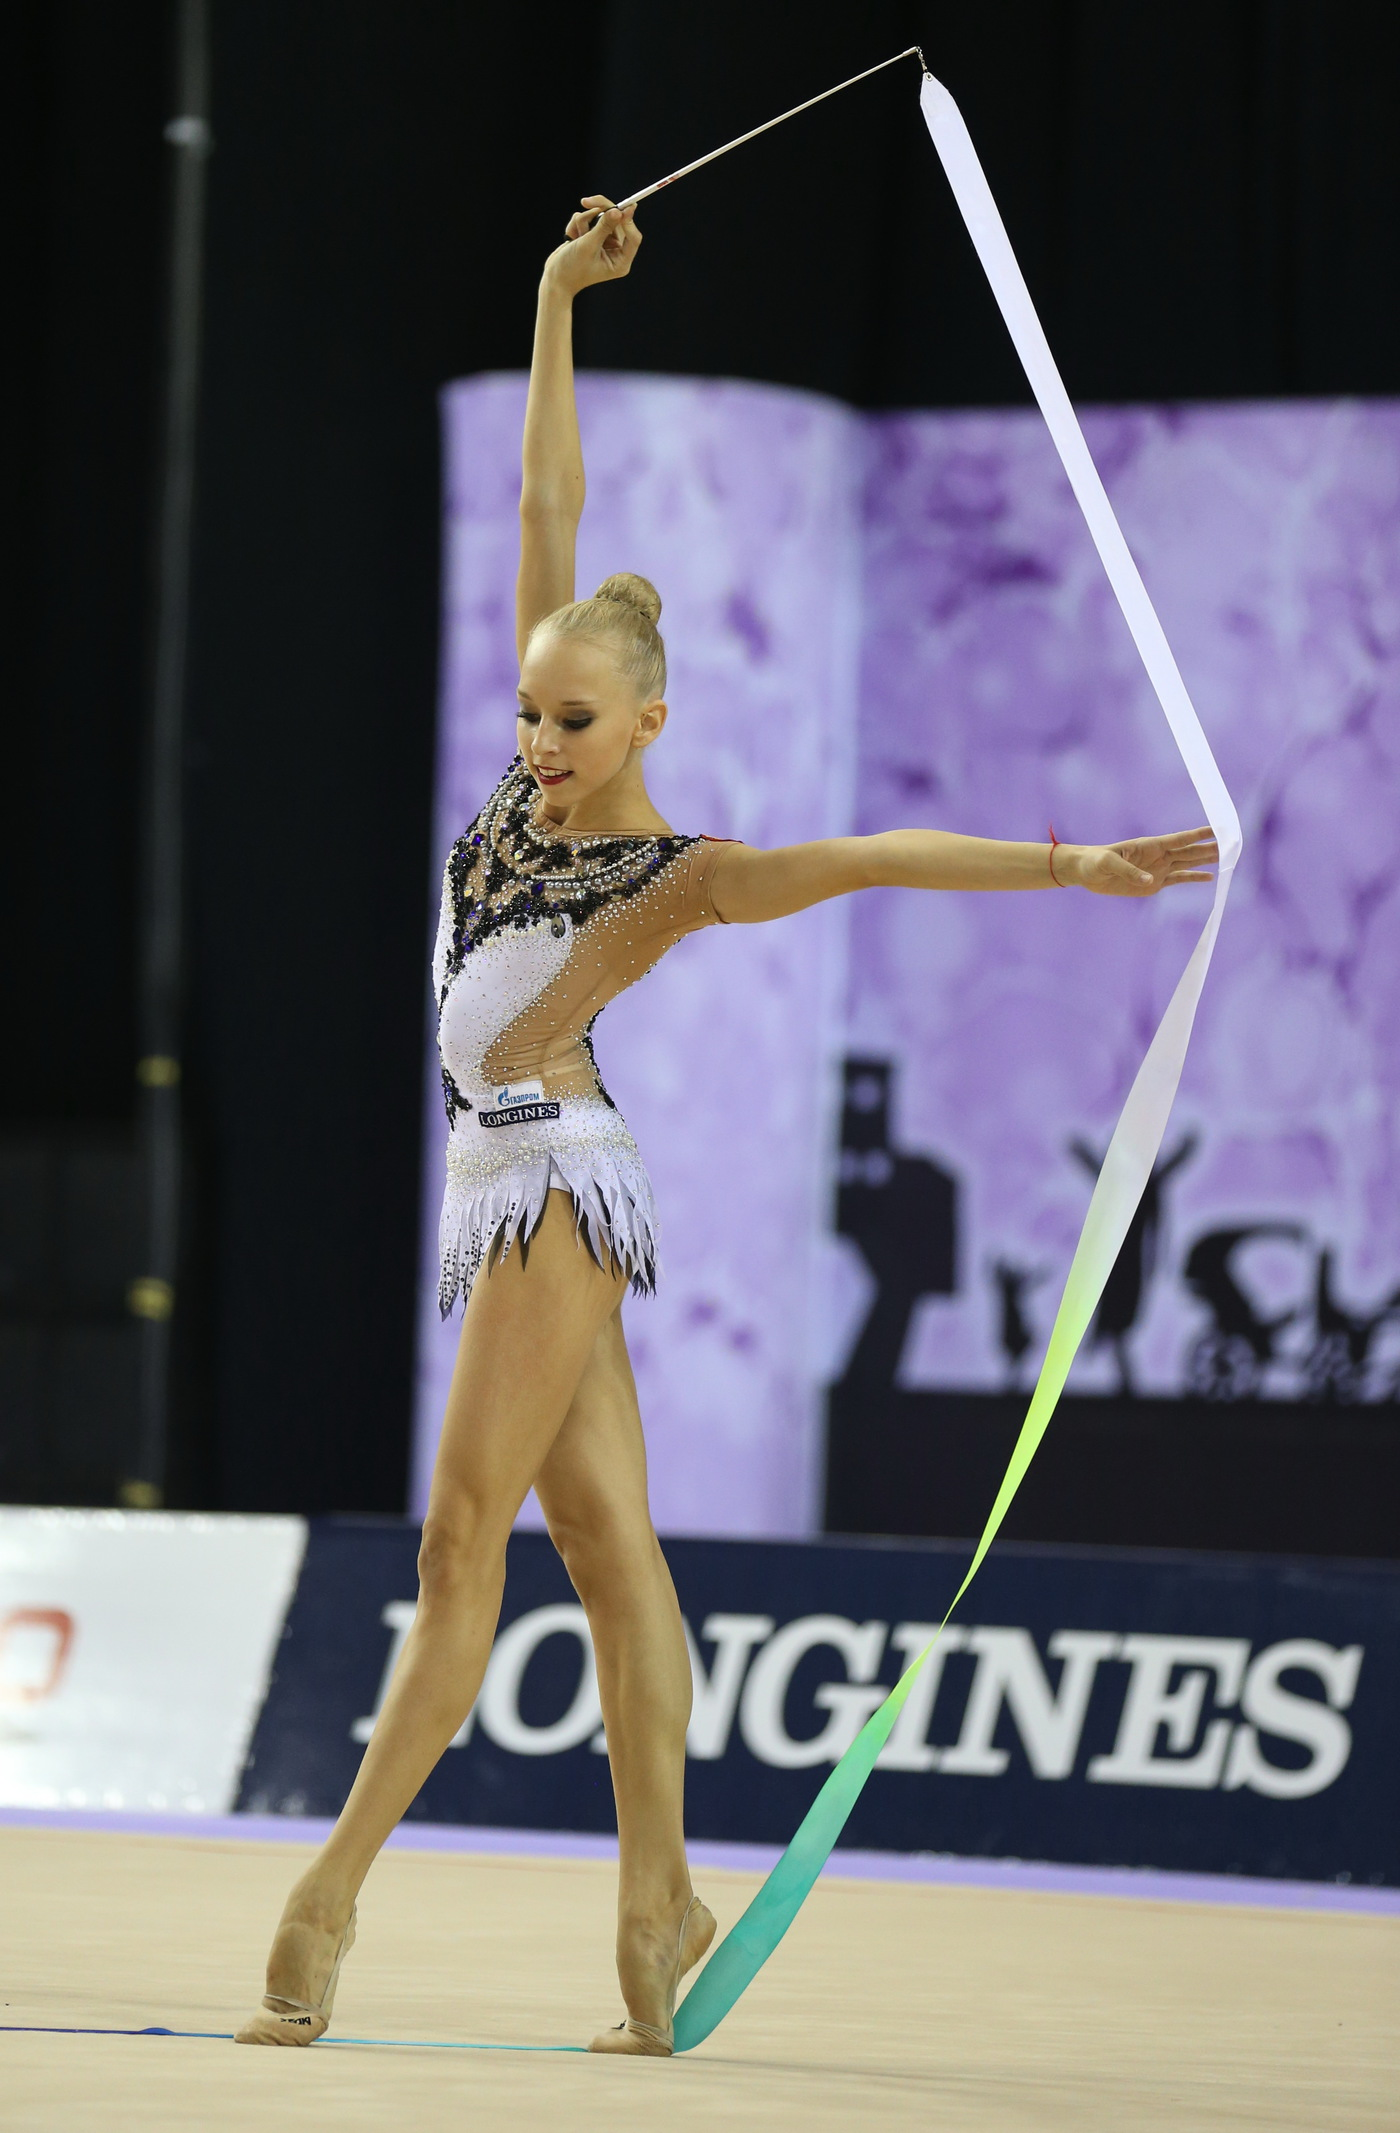 Longines Gymnastics Event: The Longines Prize for Elegance awarded to Yana Kudryavtseva at the 33rd Rhythmic Gymnastics World Championships 2014 in Izmir 5